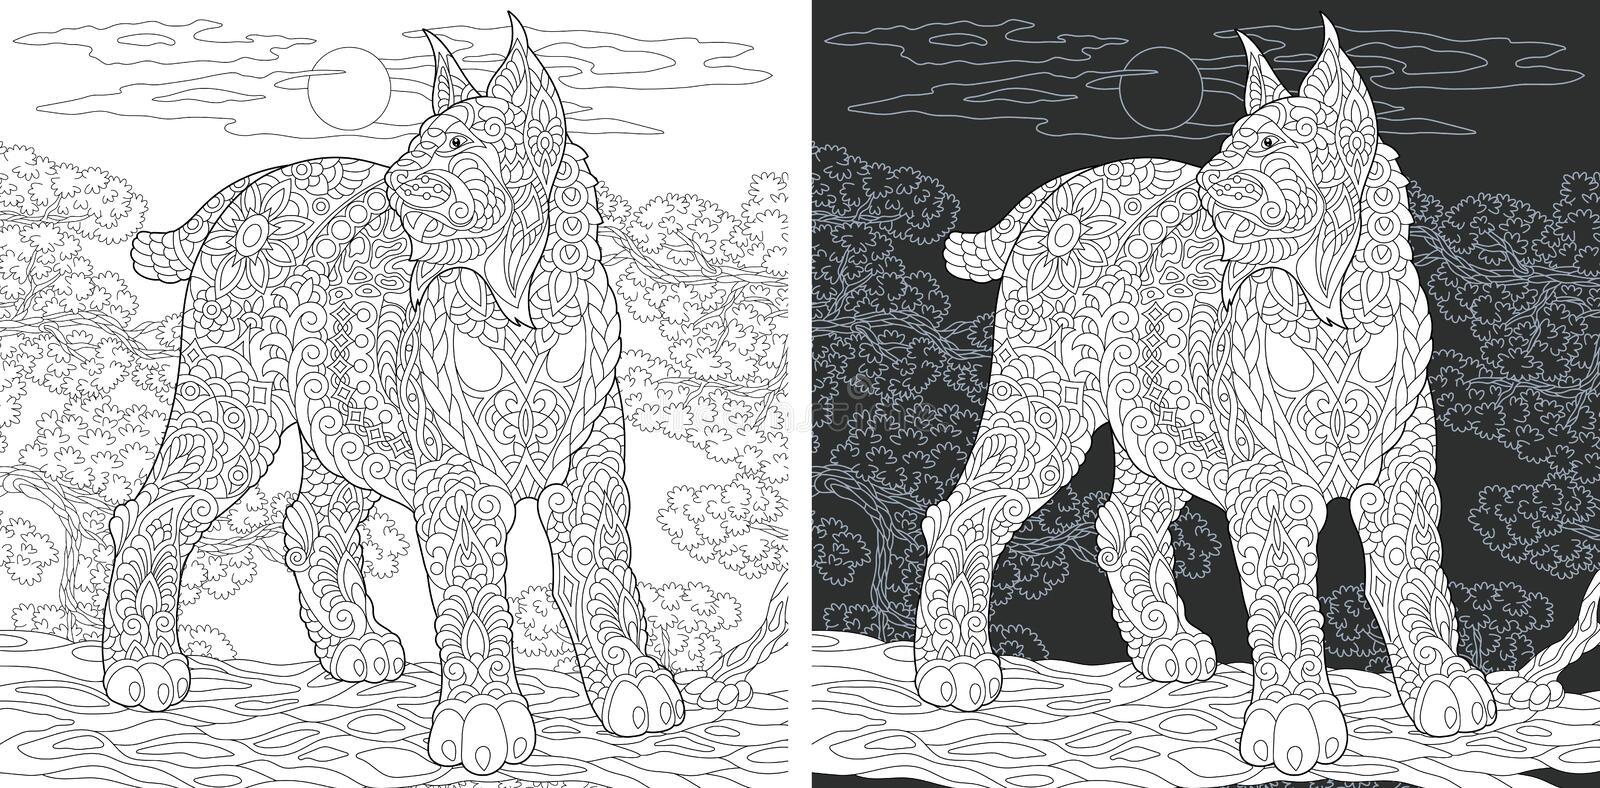 Coloring book page with wildcat. Coloring Page. Coloring Book. Colouring picture with Wildcat drawn in zentangle style. Antistress freehand sketch drawing royalty free illustration